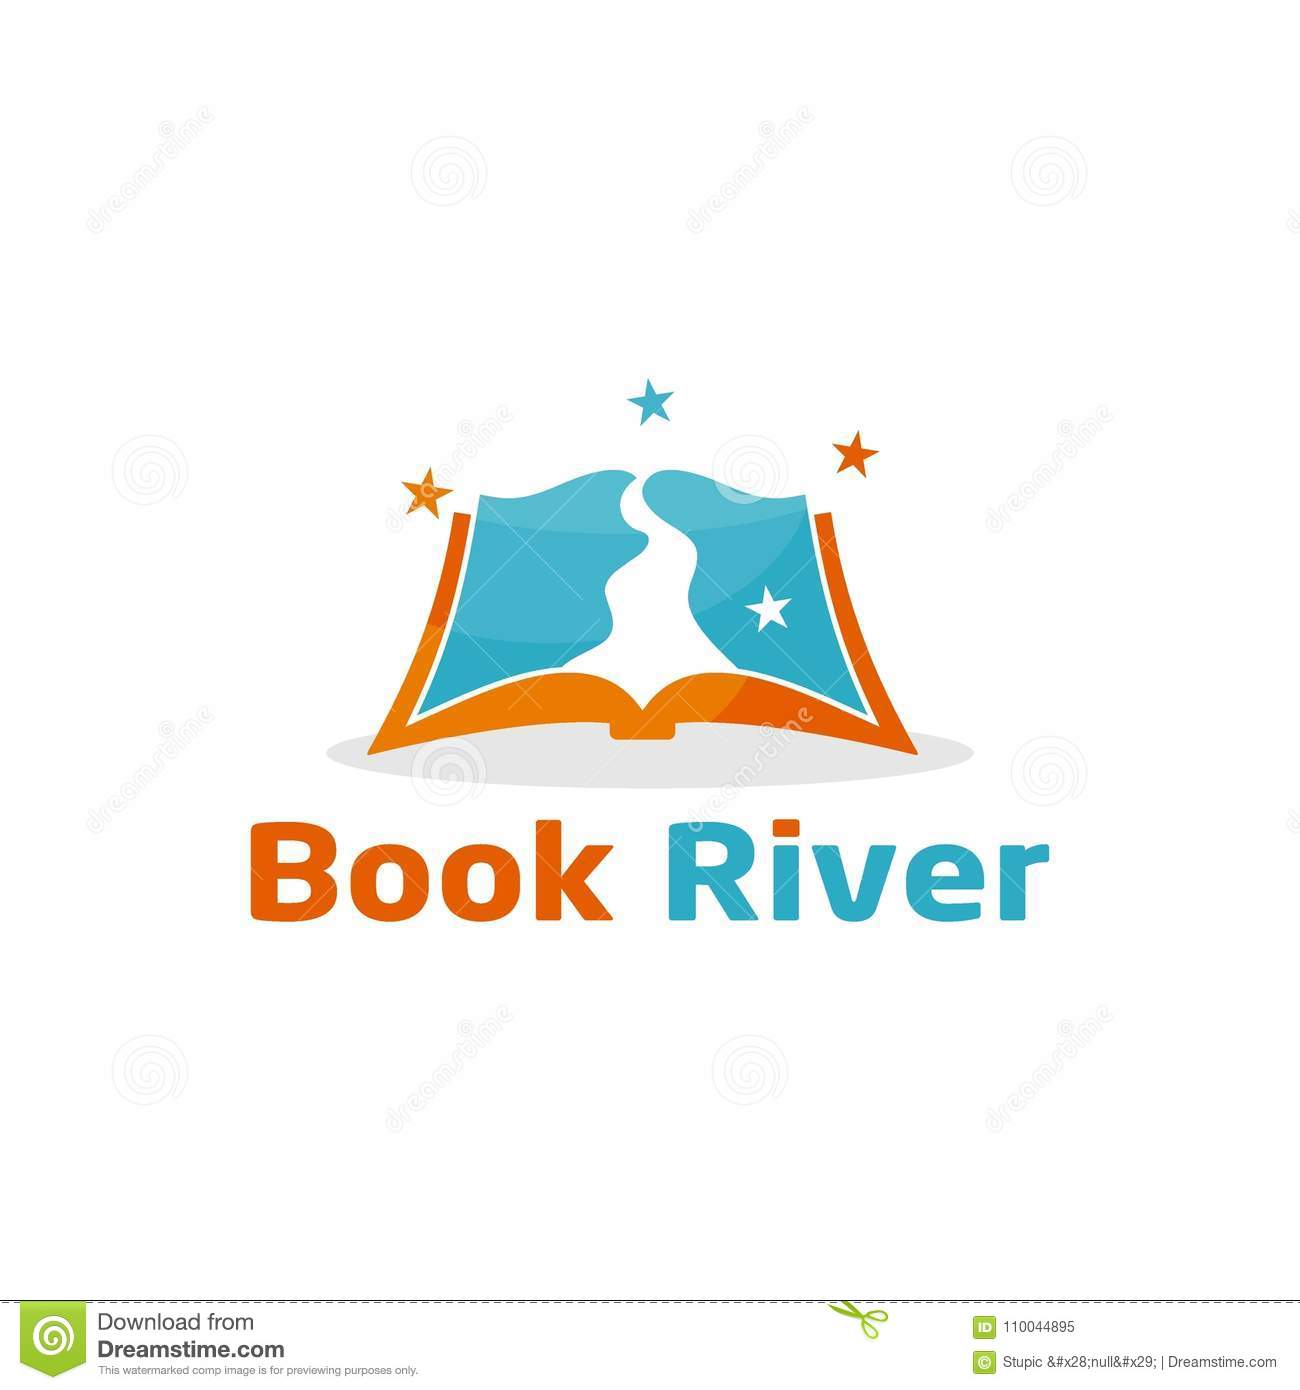 creative river logo vector art logo stock illustration illustration of abstract healthy 110044895 https www dreamstime com creative river logo vector art simple unique illustration various purposes best used image110044895